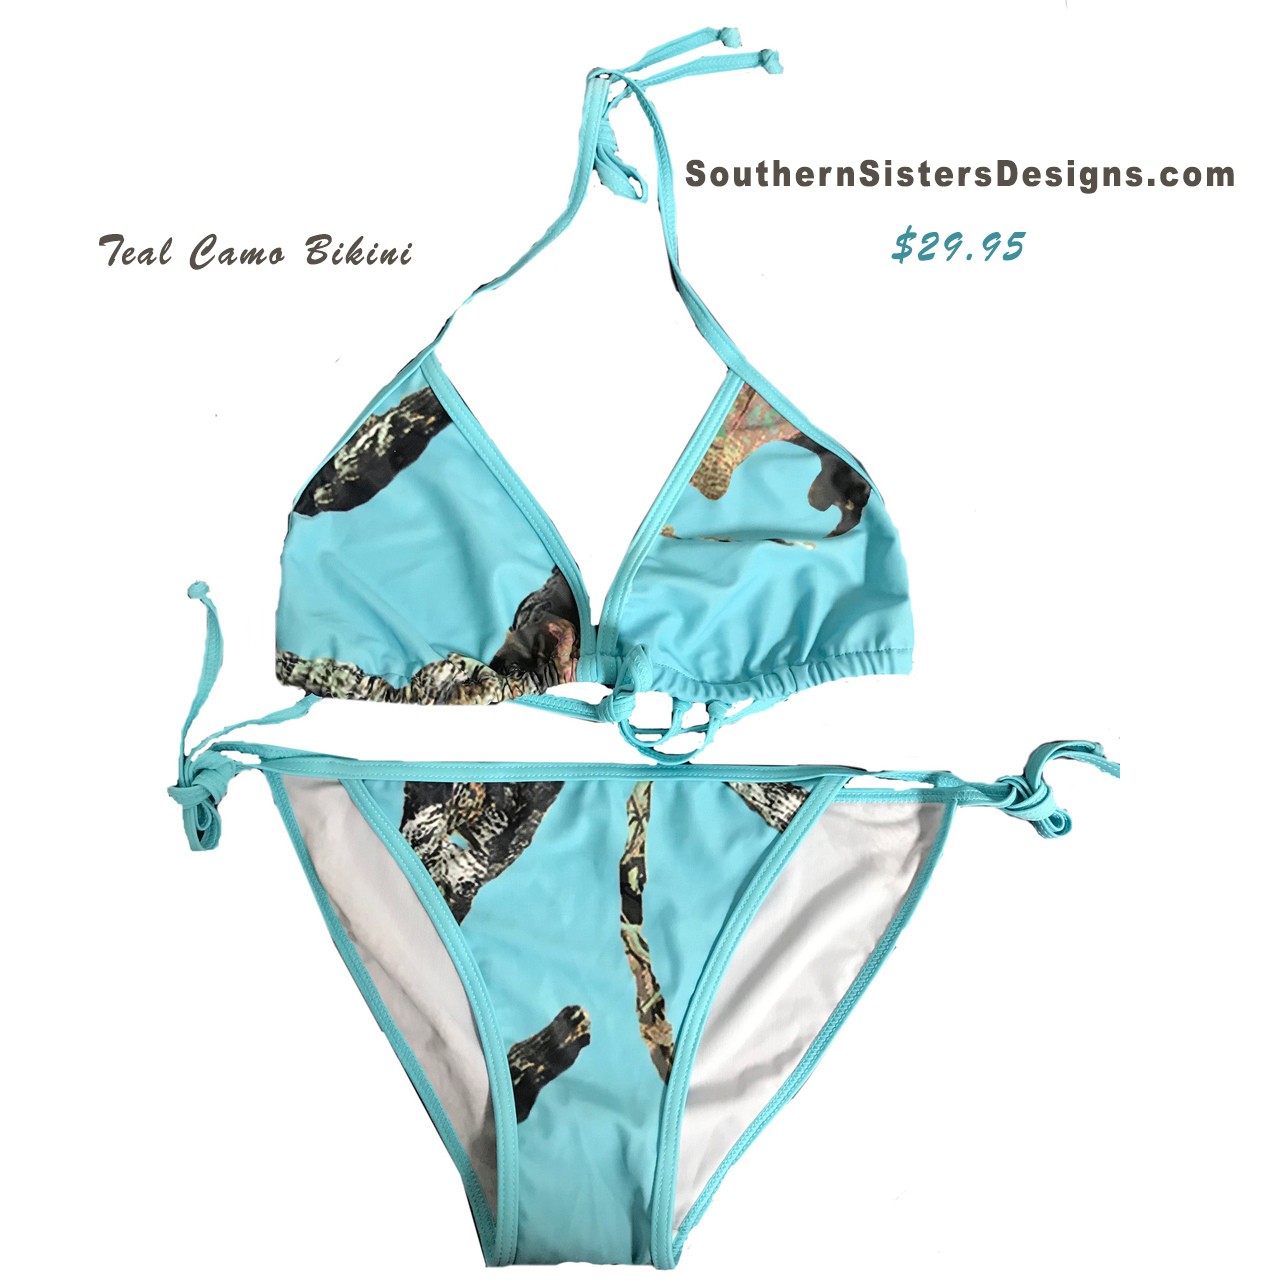 Teal Camo Ladies Swimsuit top and bottom set